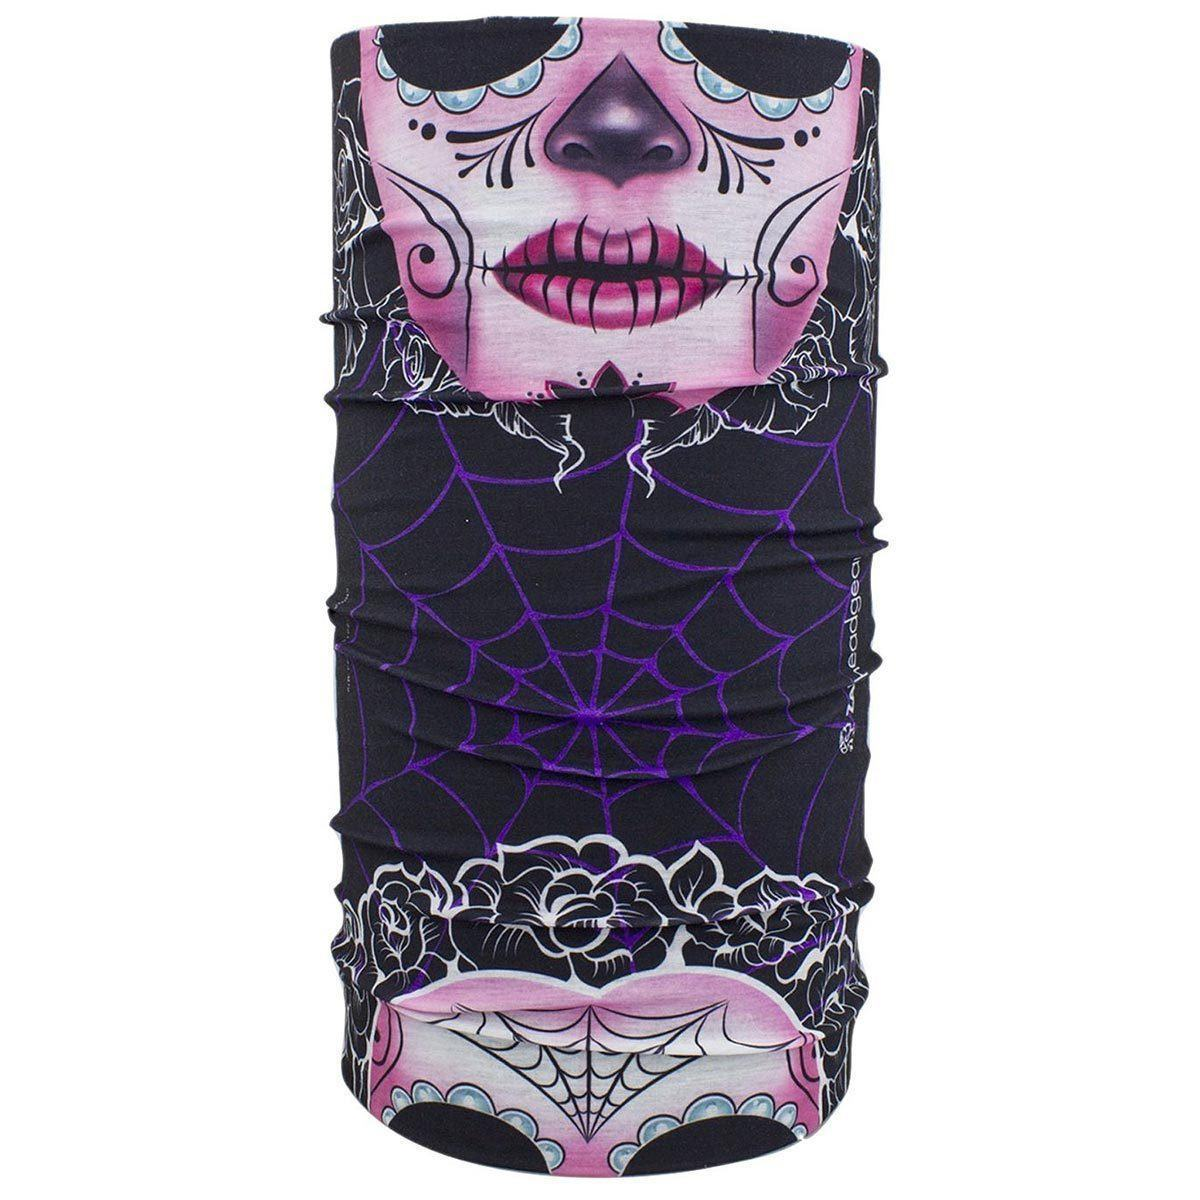 Zan Headgear Unisex Adult Motley Tube Polyester Sugar Skull Face Mask